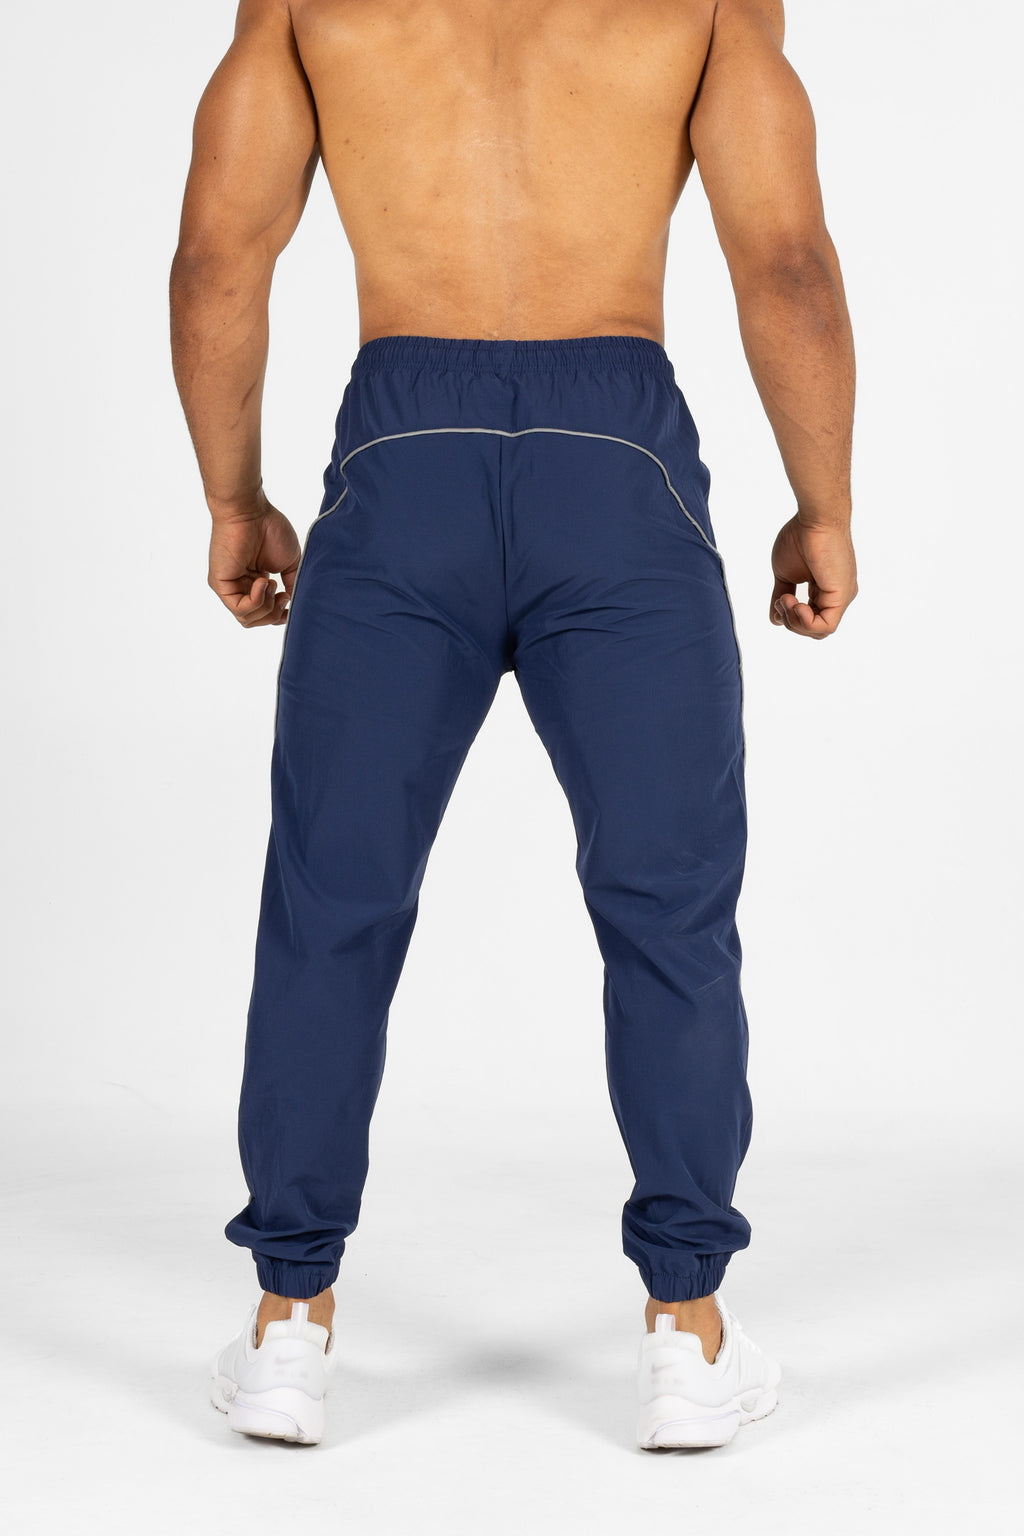 BMFIT Elastane V-Panel Shirt BM406 - Black/Burgundy